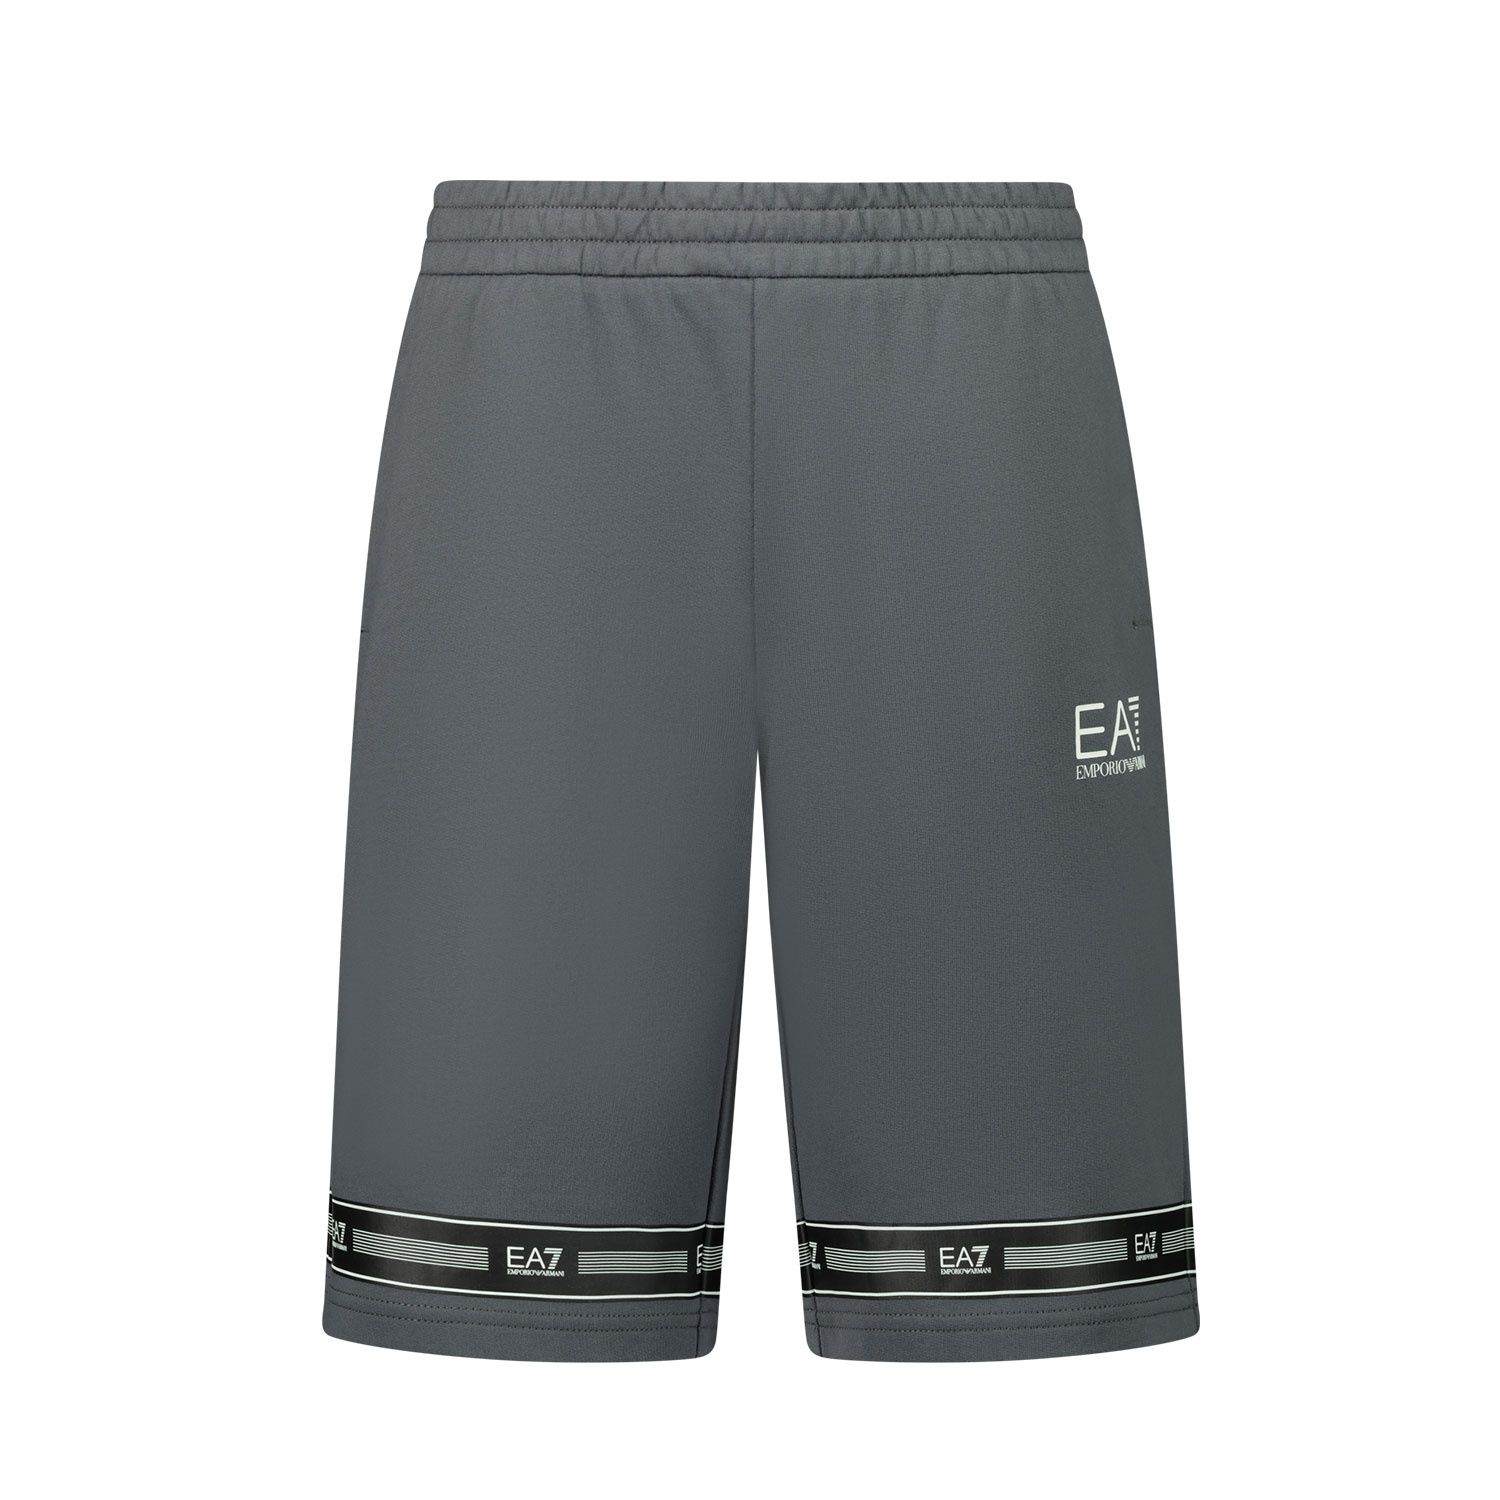 Picture of EA7 3KBS56 kids shorts dark gray